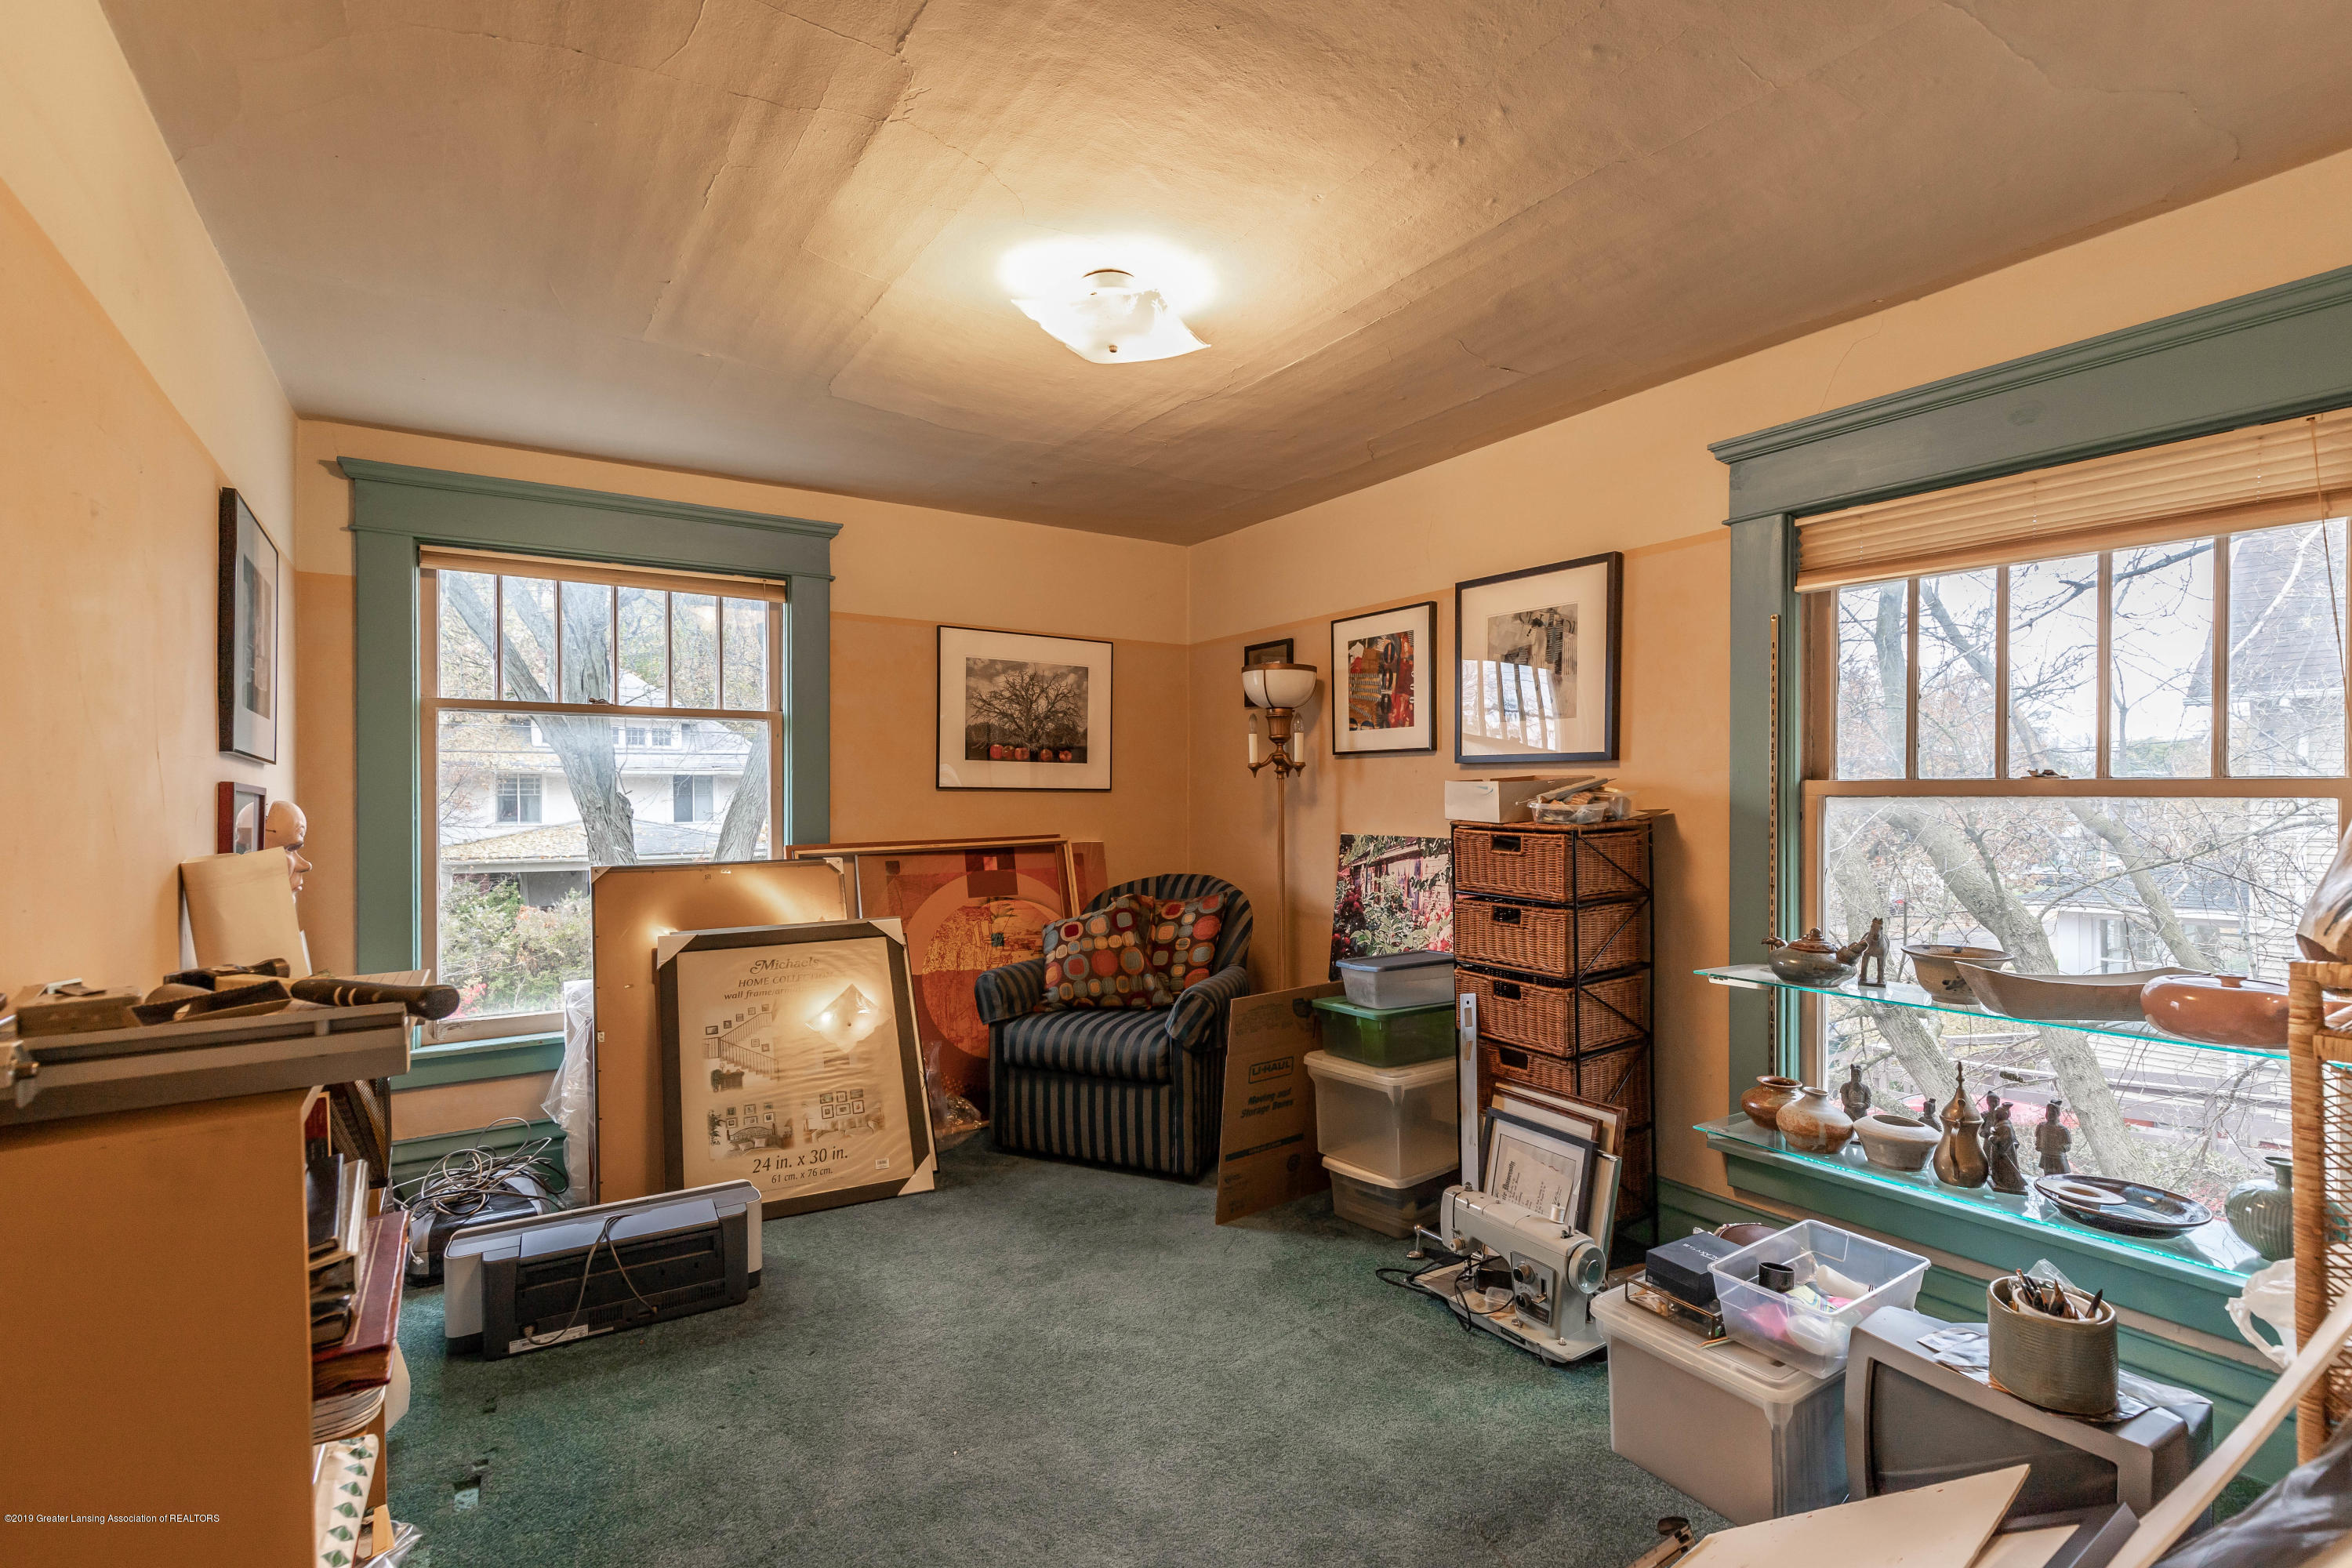 114 S Foster Ave - Bedroom 2 - 22